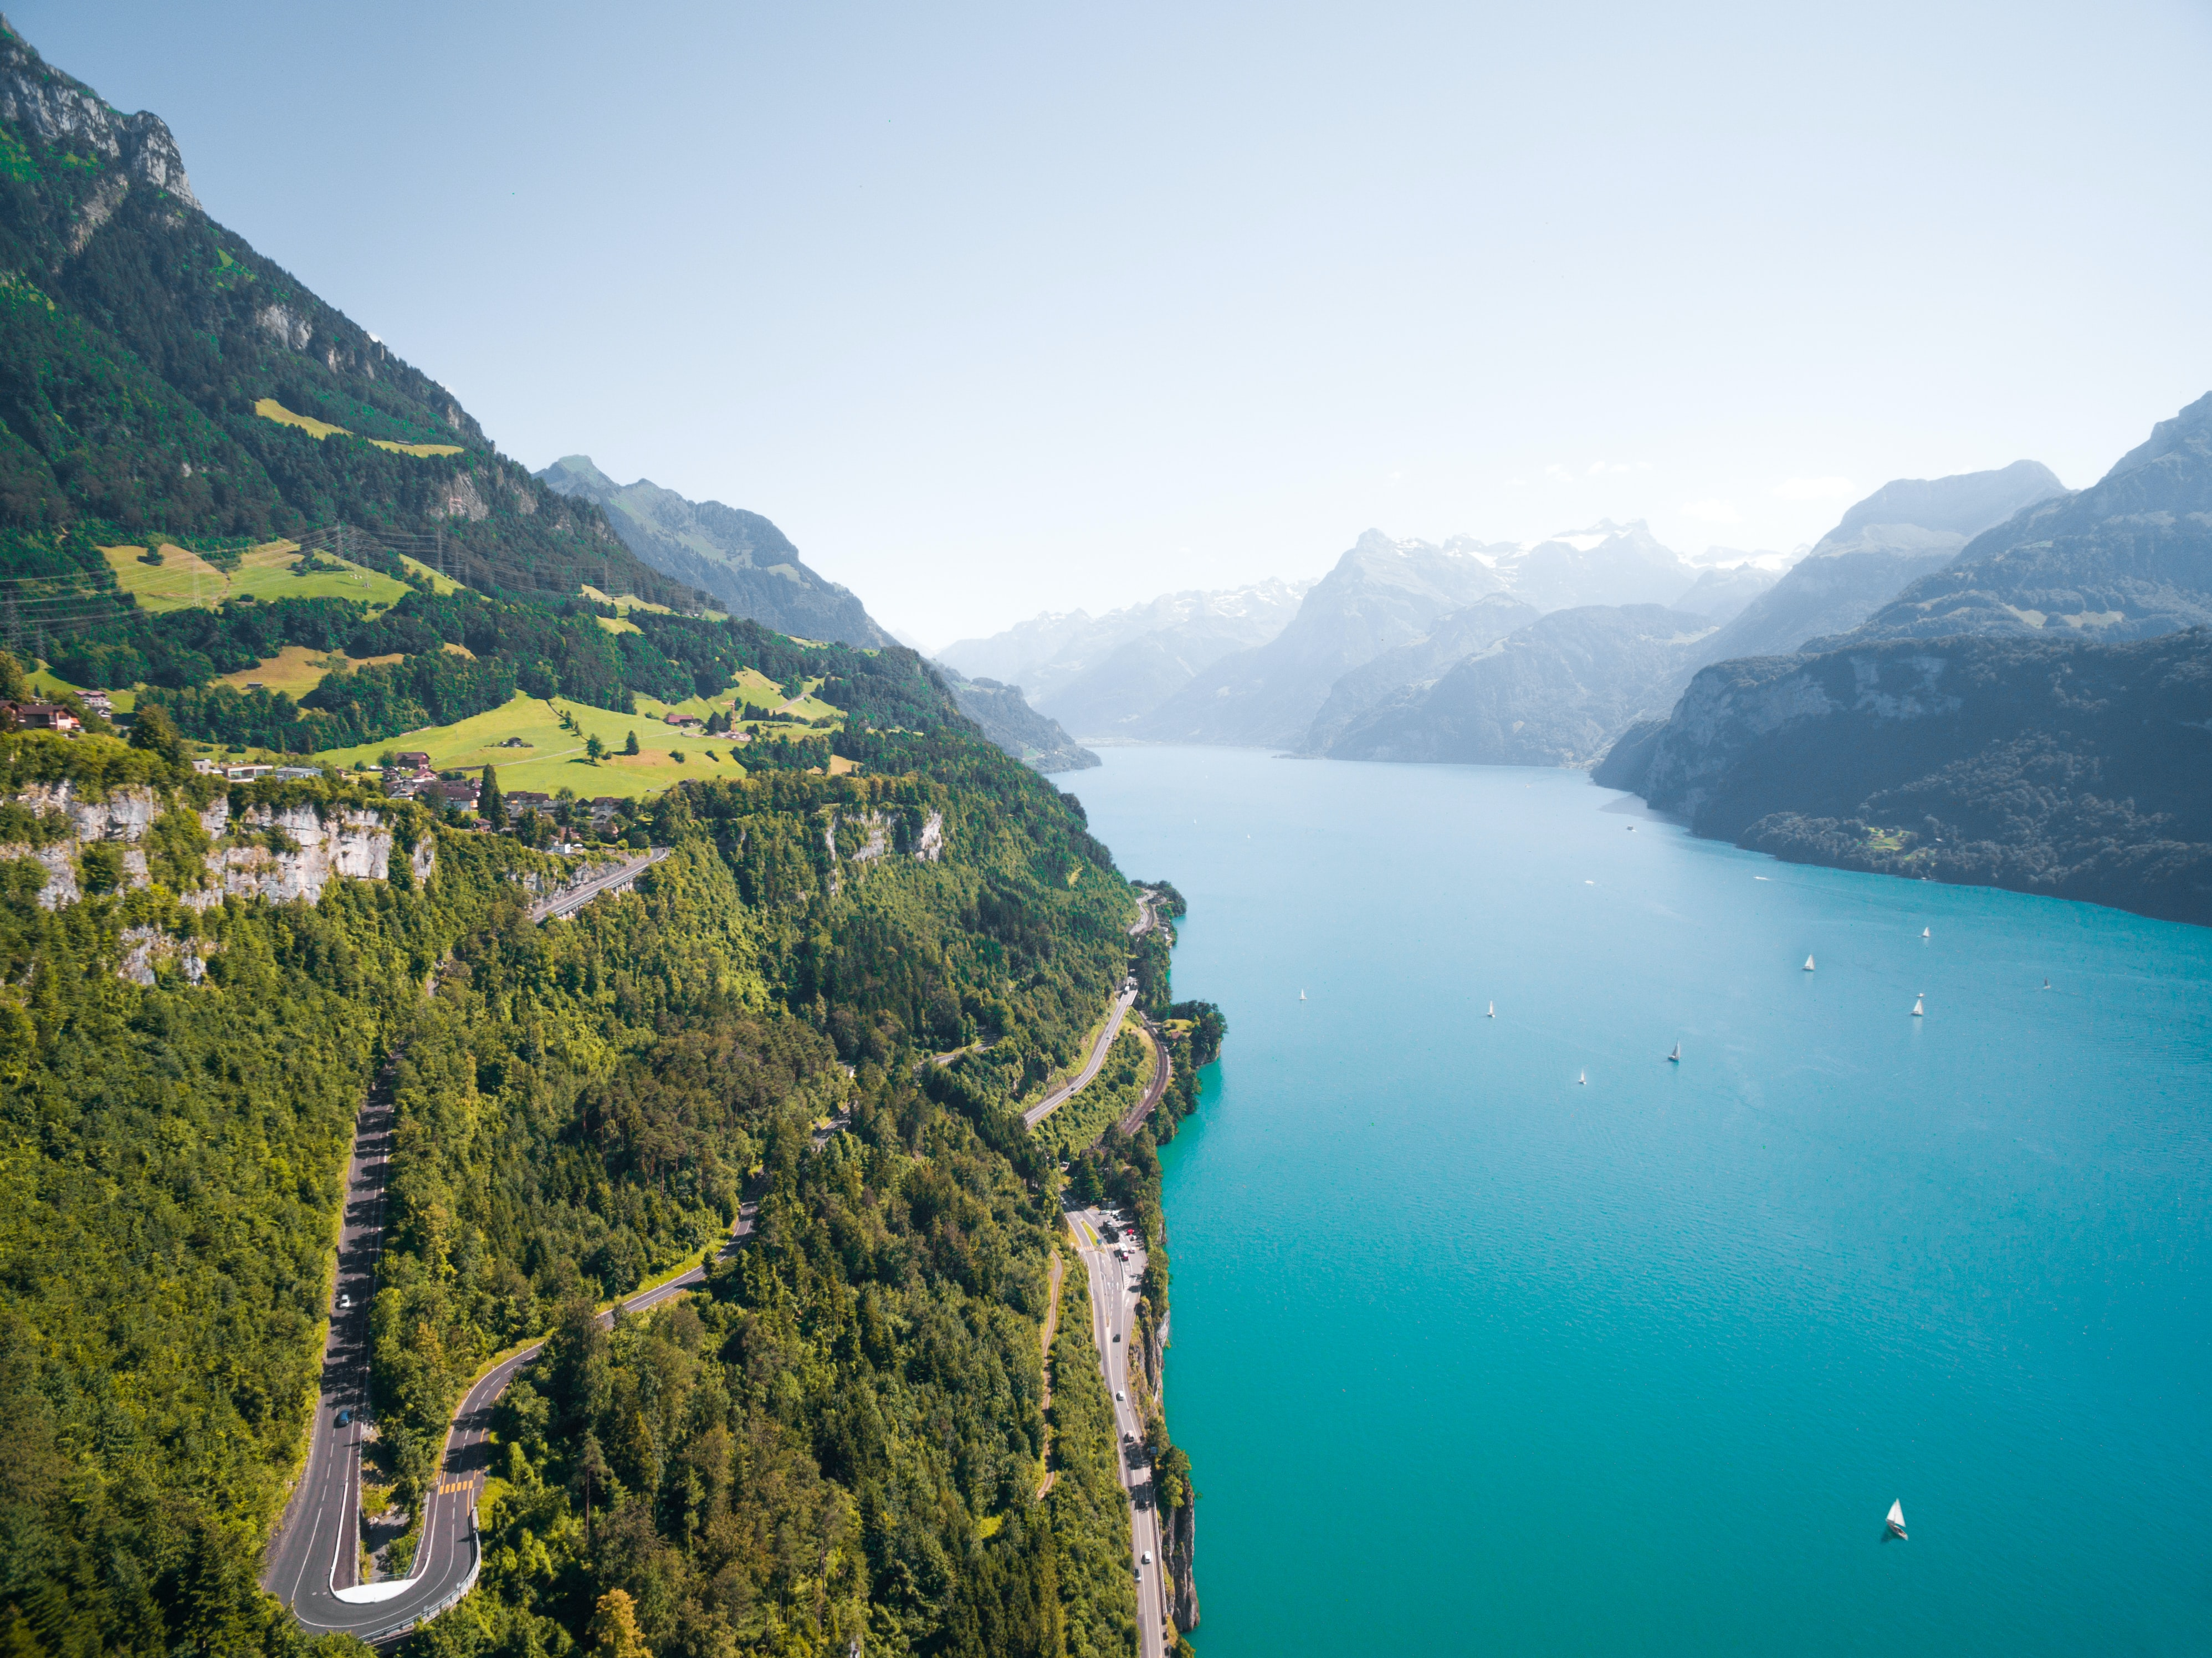 Aerial view of long roads carved in a green cliff overlooking an azure Alpine river